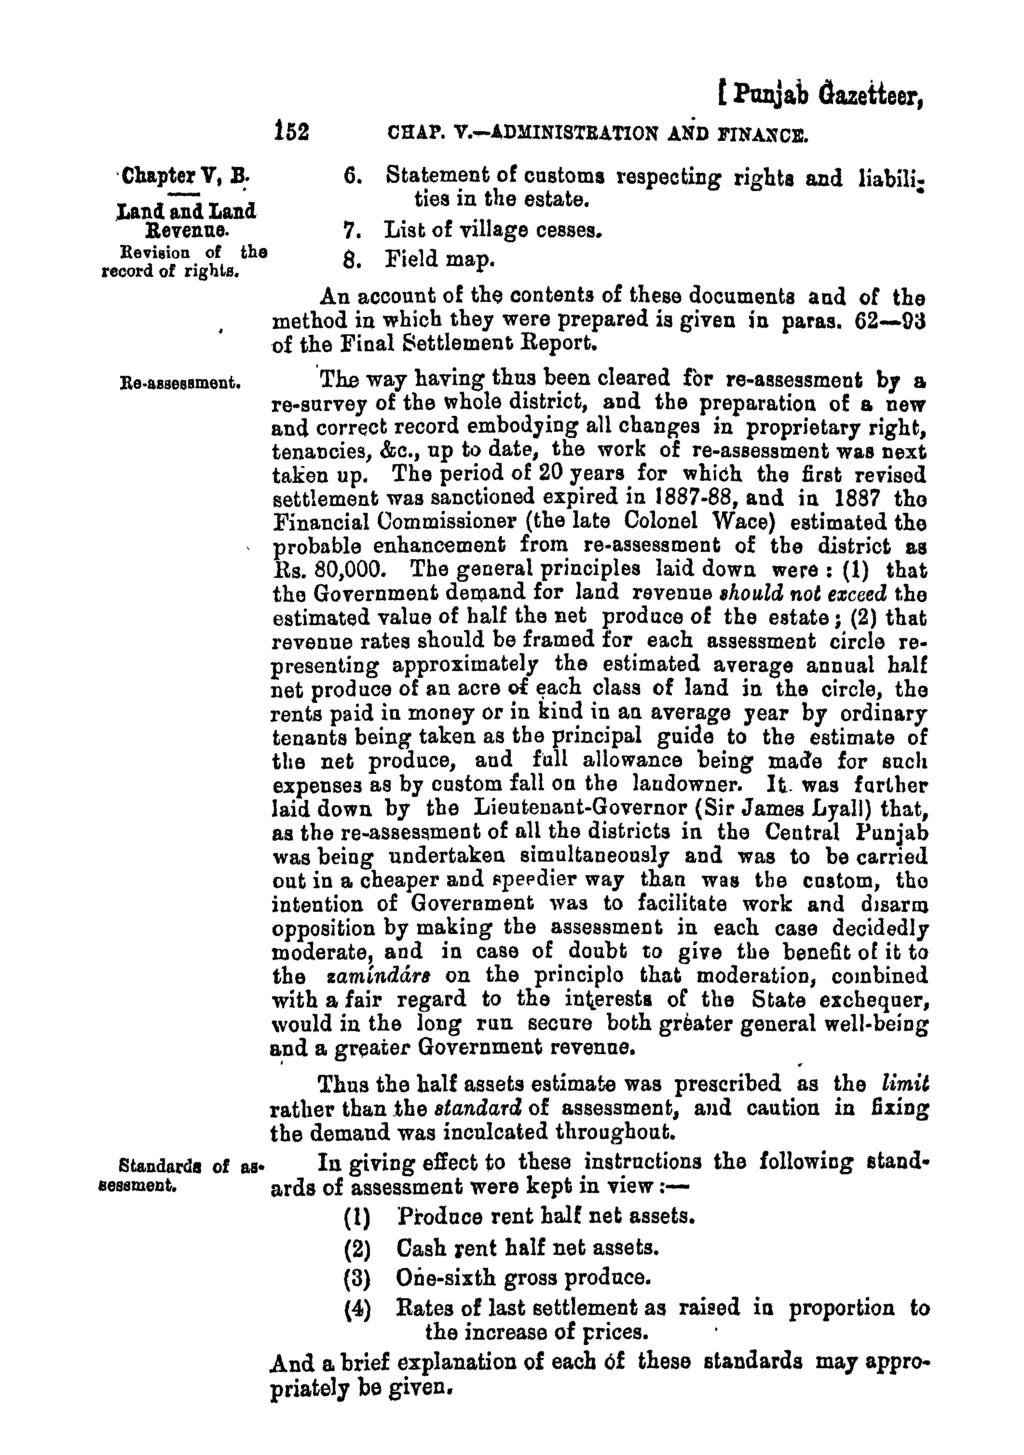 'Chaptel' V, B:.Land and Land Revenue. Revision of the record of rights. 152 CHAP. V.-ADMINISTRATION AND FINANCE. [PUDja,b Gazetteer, 6.